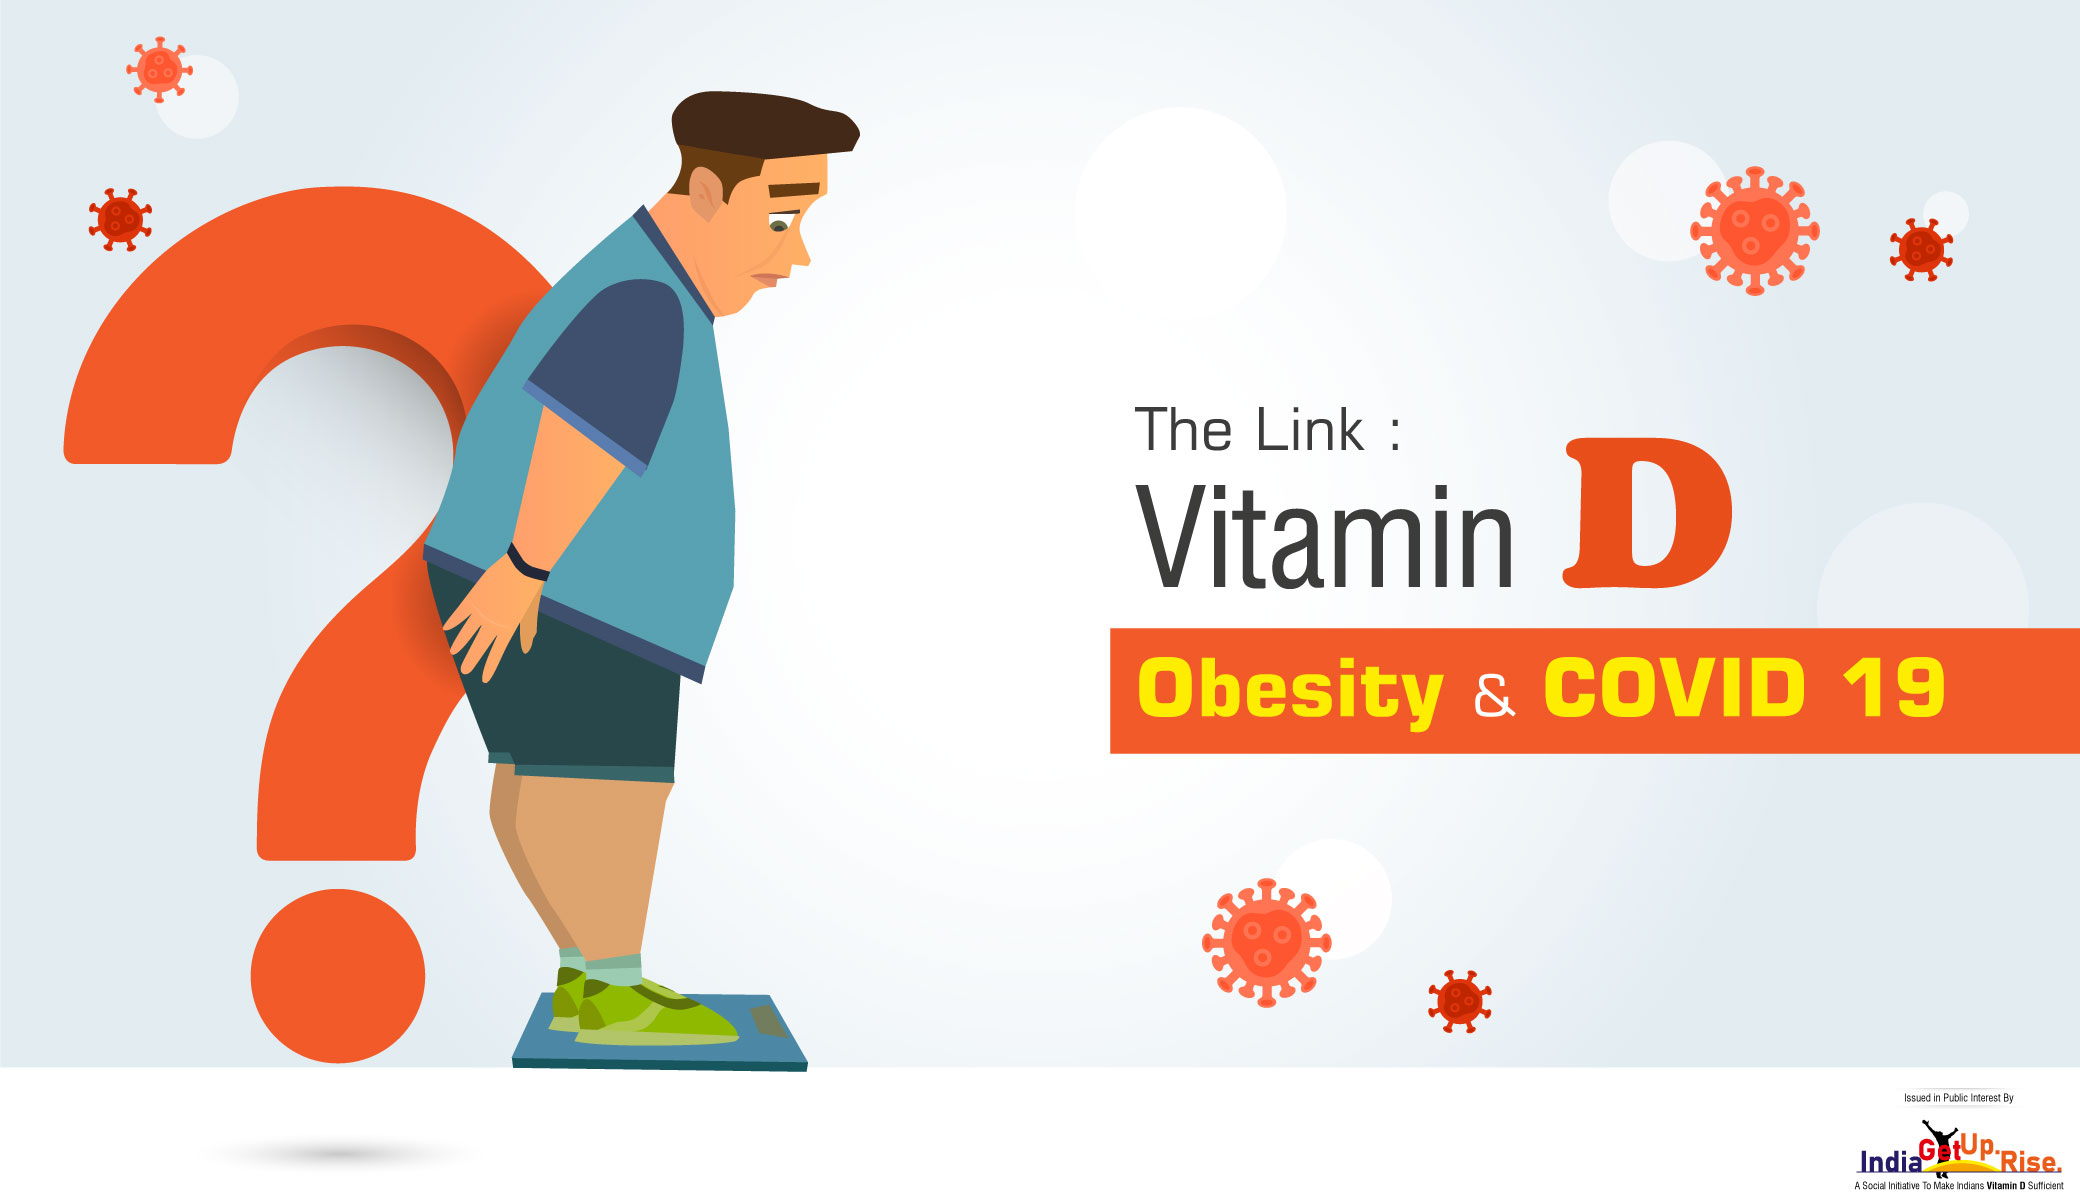 The Link between Vitamin D, Obesity and COVID 19